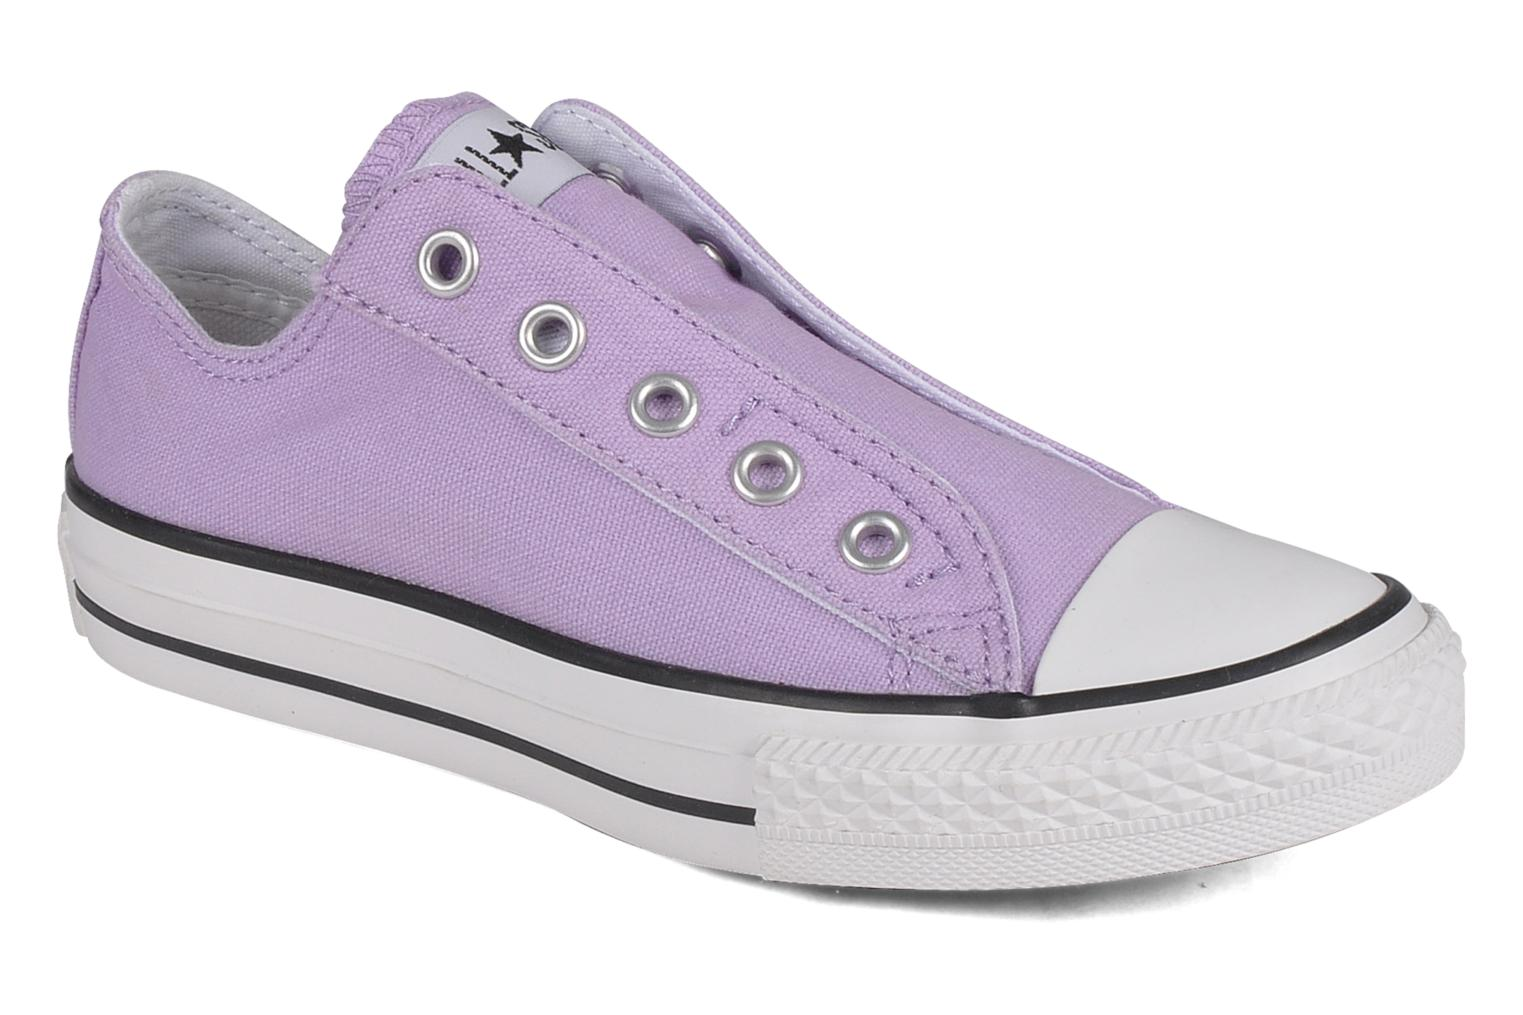 Converse Ox Taylor Chuck Star Kpaars Slip On Simple All Y7yb6Ifmgv